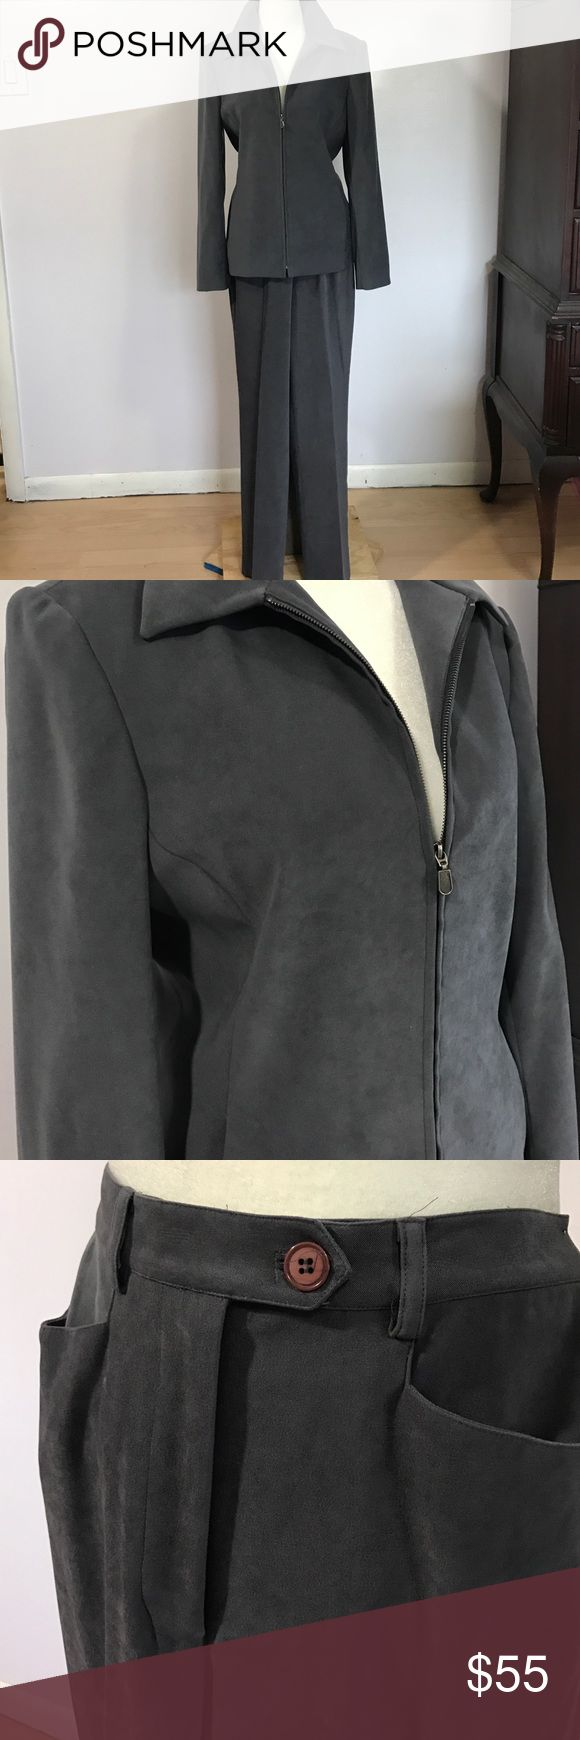 """Ladies Trousers NY Pant Suit- Sz 4 NWT Beautiful charcoal grey suit, brand new. Jacket has full front zipper & slanted front pockets - Armpit to armpit- 181/2"""". Length- 25"""".  High waisted pant has slanted front pockets & flat back pockets- Waist- 131/2"""". Inseam- 30""""💖💖 Suedelike poly/ spandex blend. Trousers Etc Pants"""